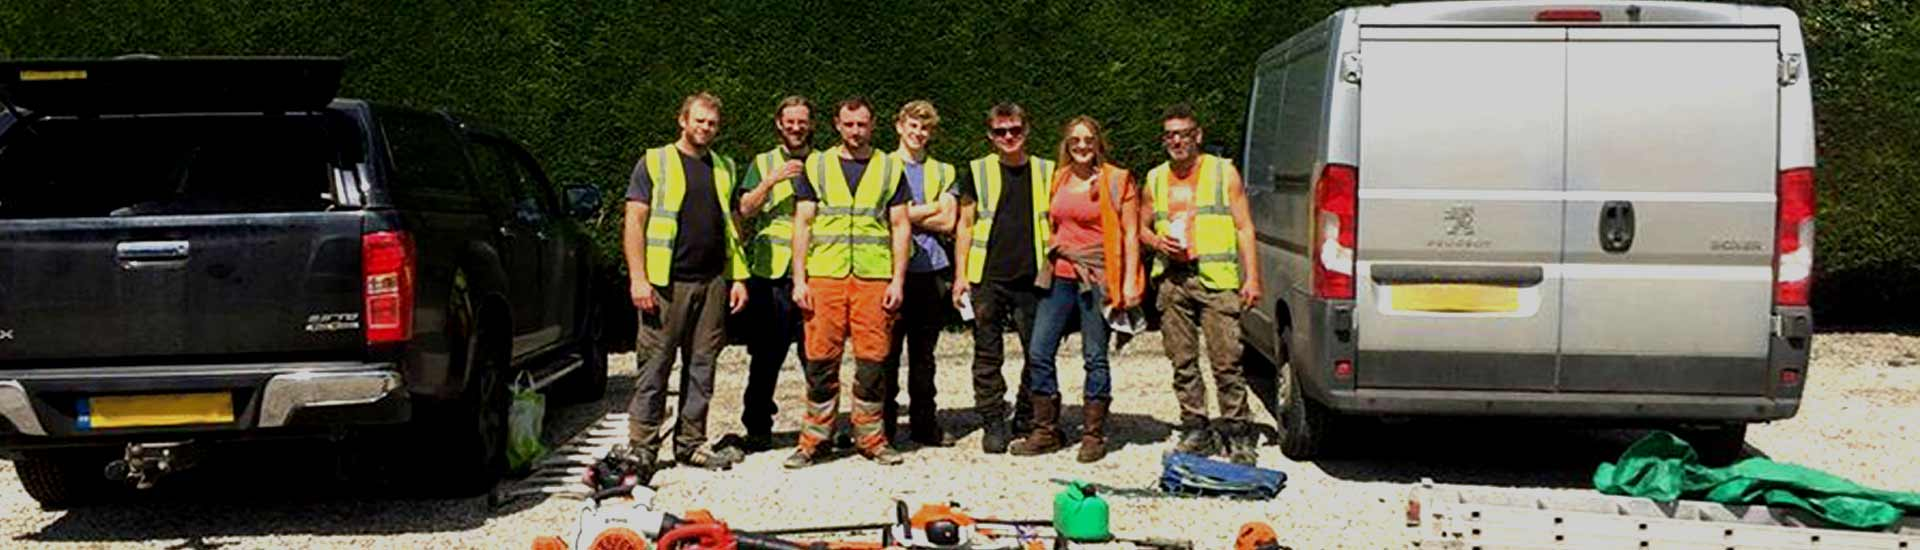 The Harrogate Garden & Trees Team